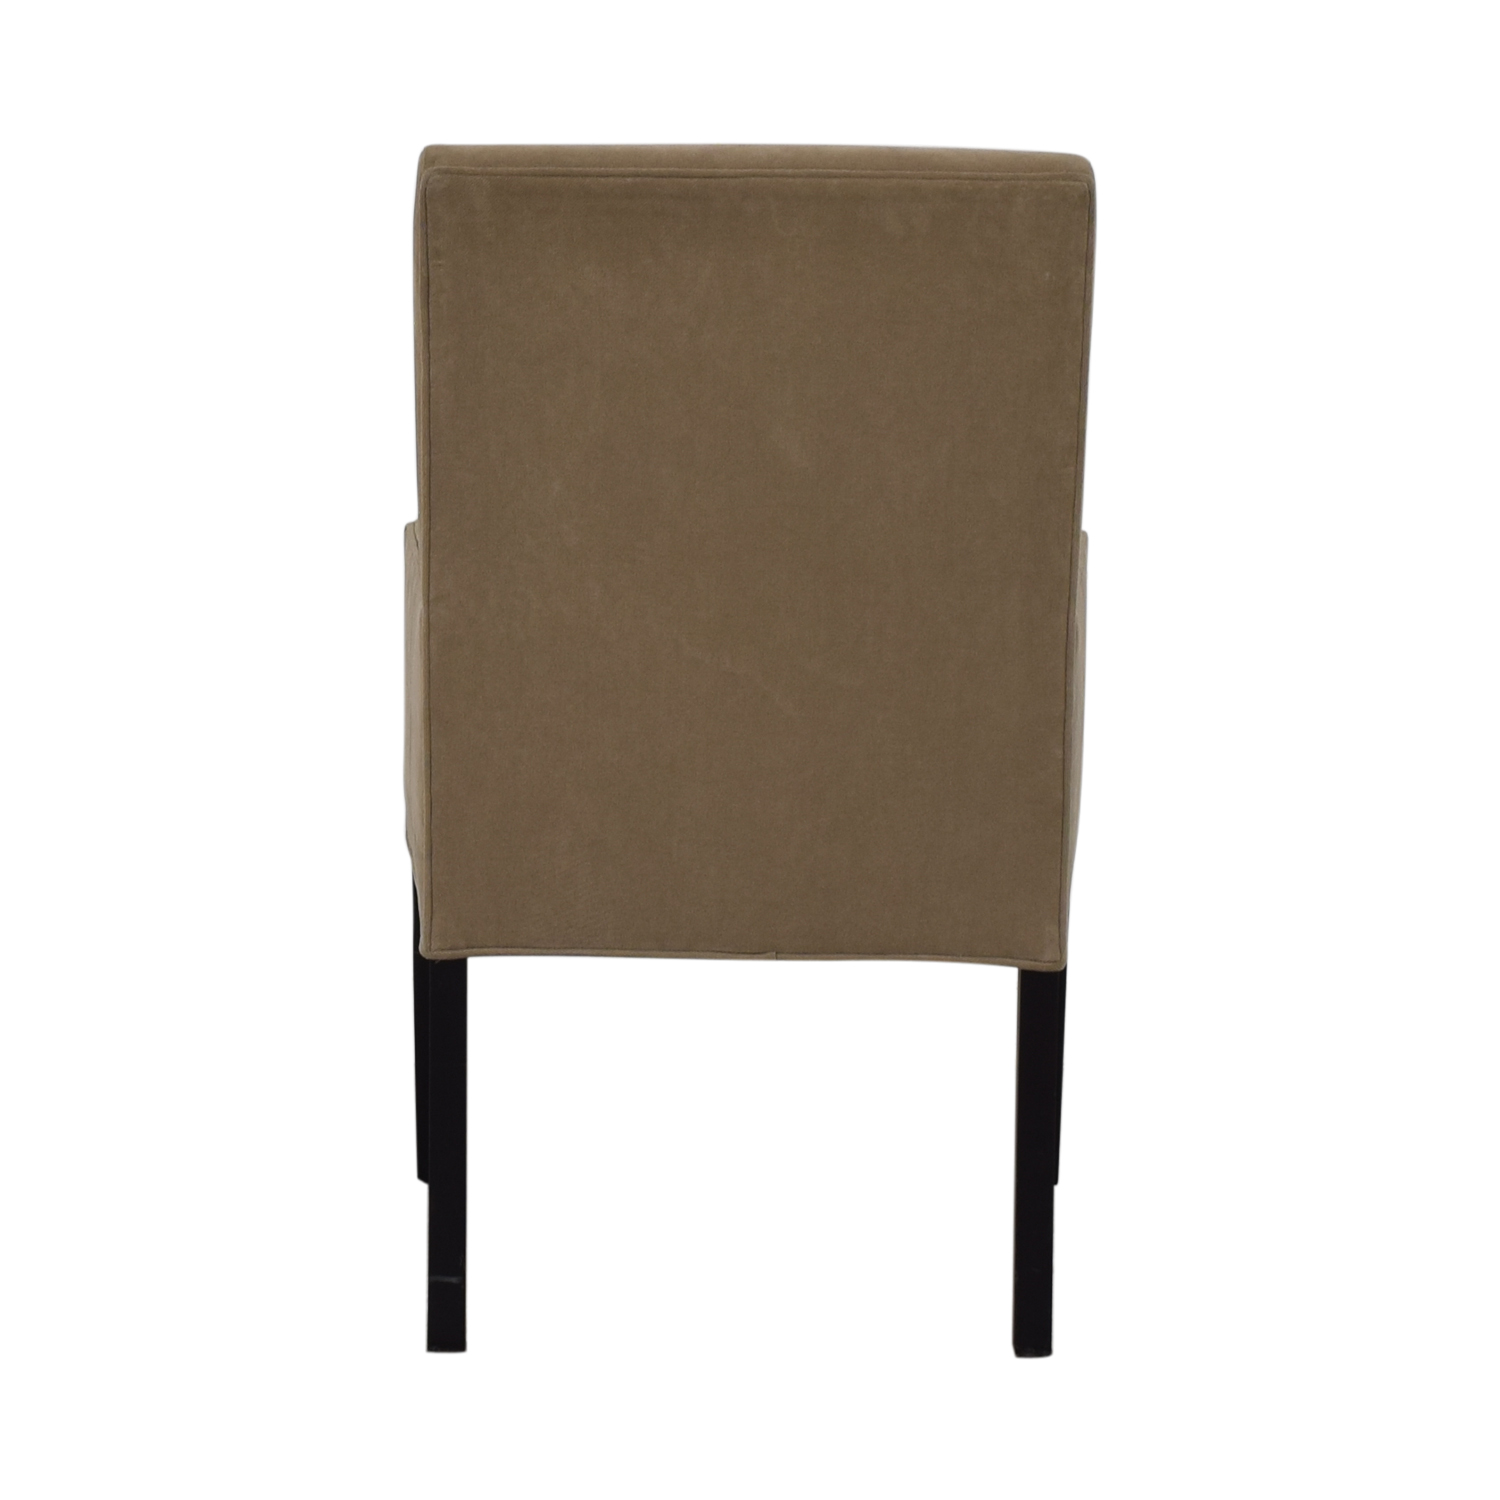 Crate & Barrel Crate & Barrel Tan Dining Chair used